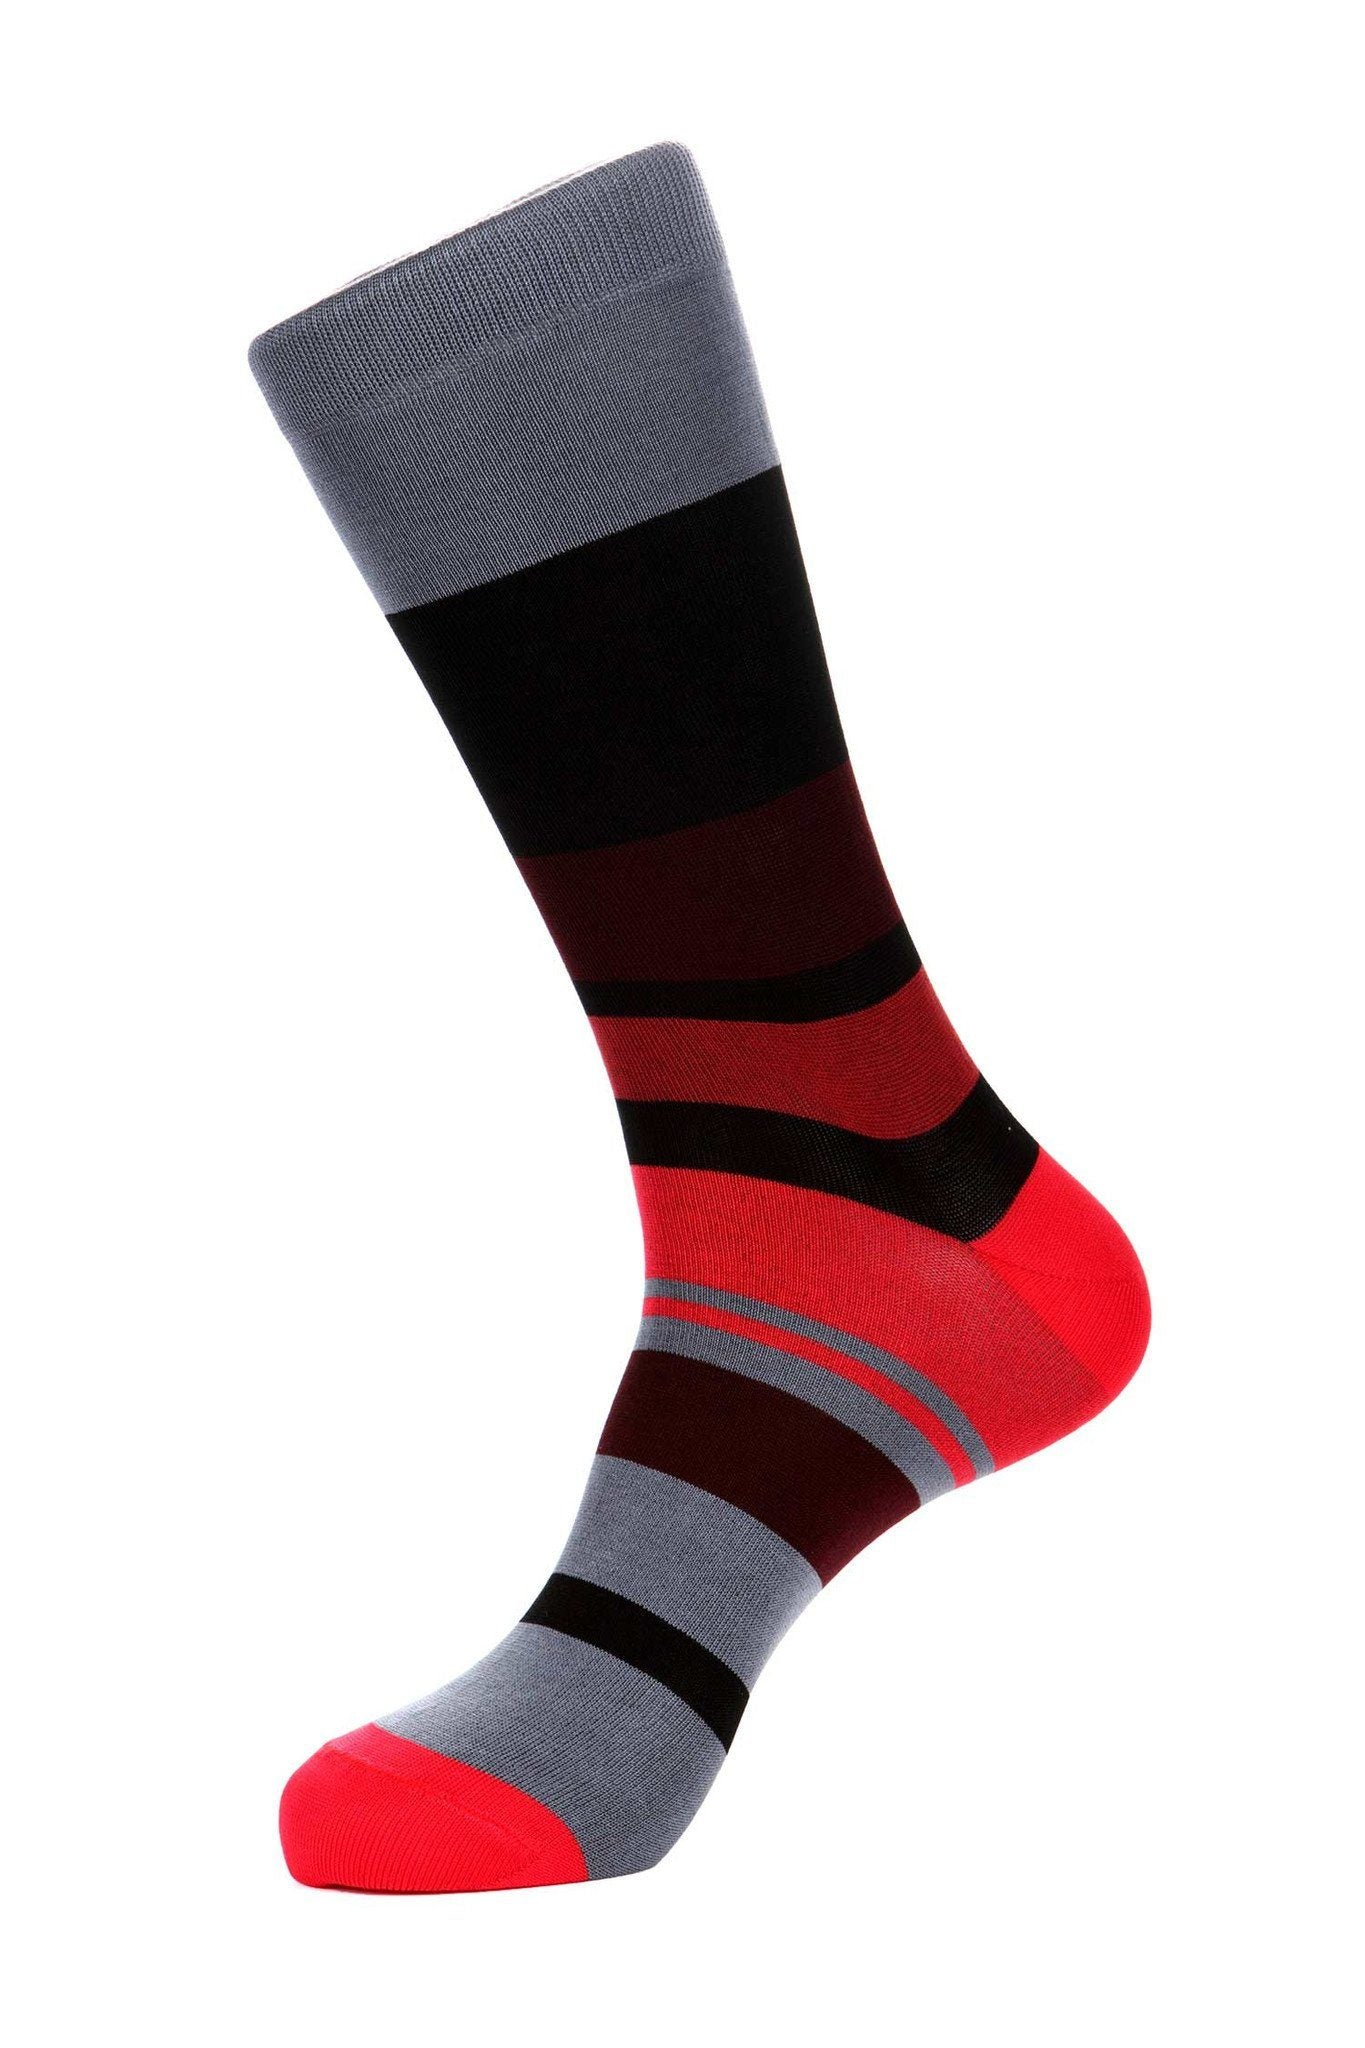 JL-11050-1,socks,Jared Lang, | GentRow.com